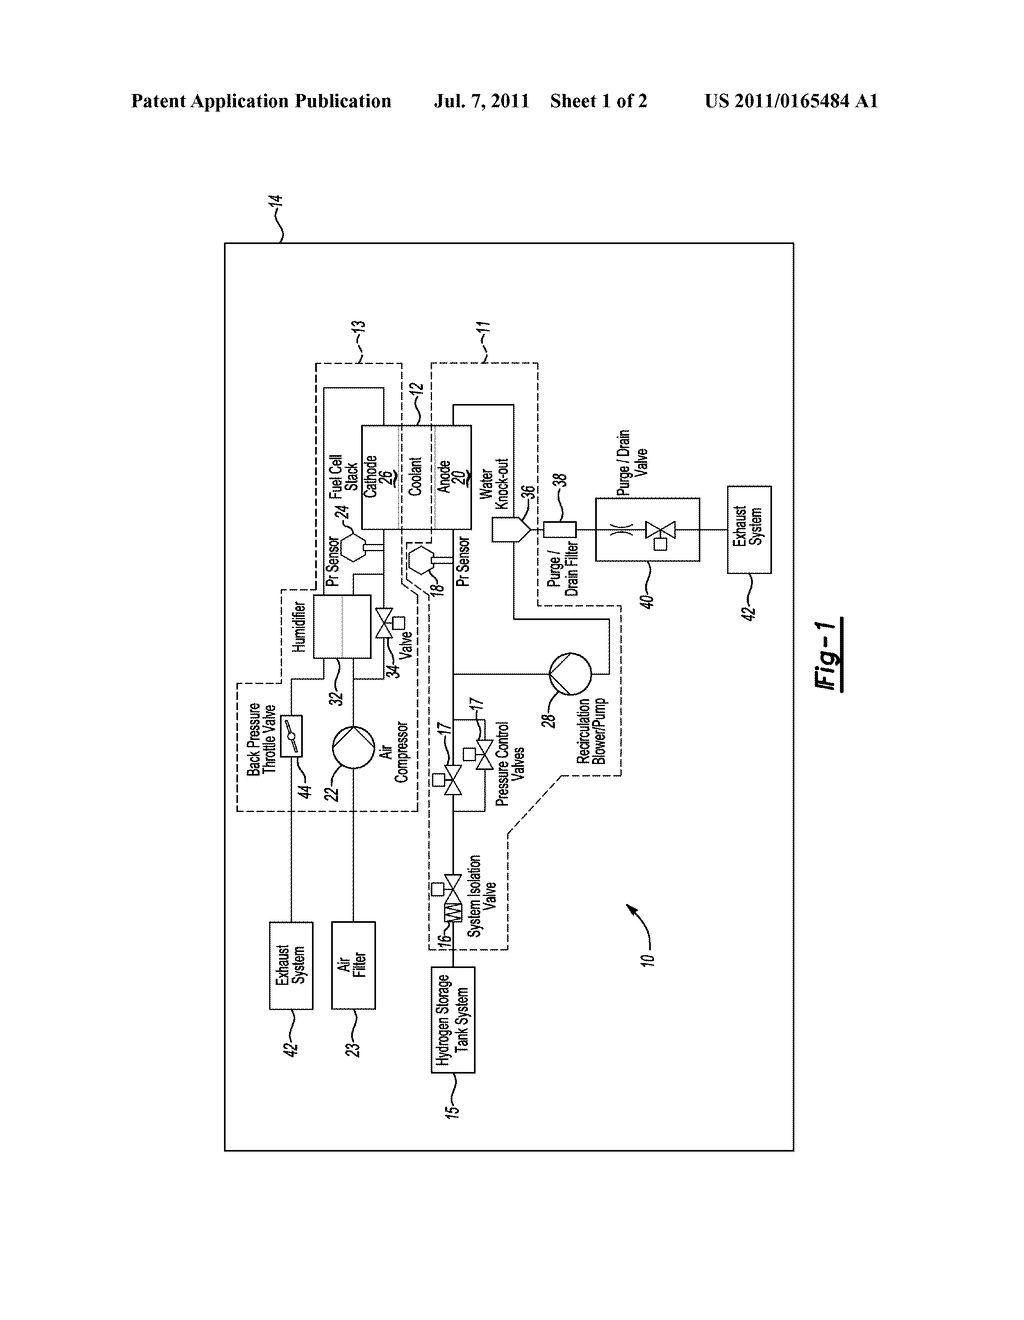 hight resolution of fuel cell system with mechanical check valve diagram schematic and image 02